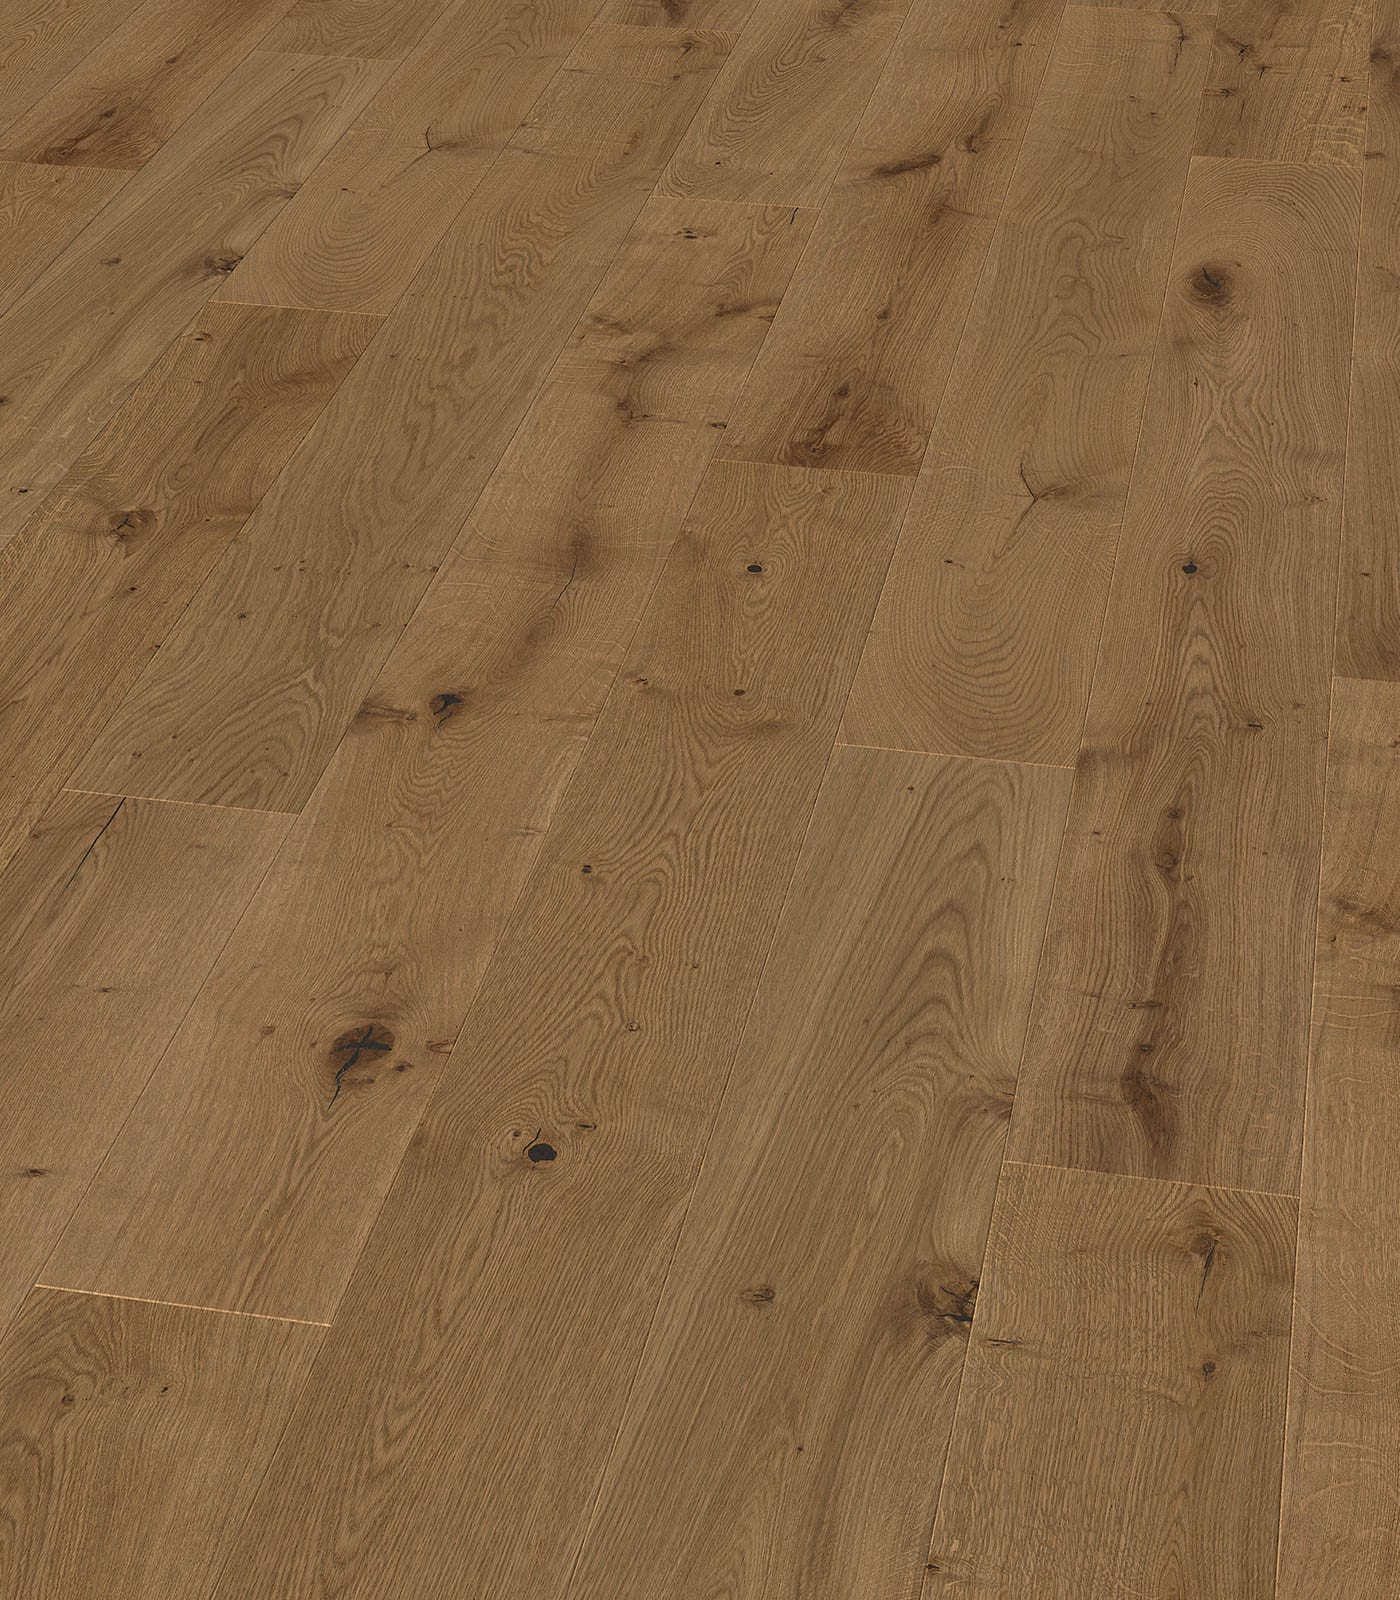 Cancun-European Oak floors-Lifestyle collection-angle